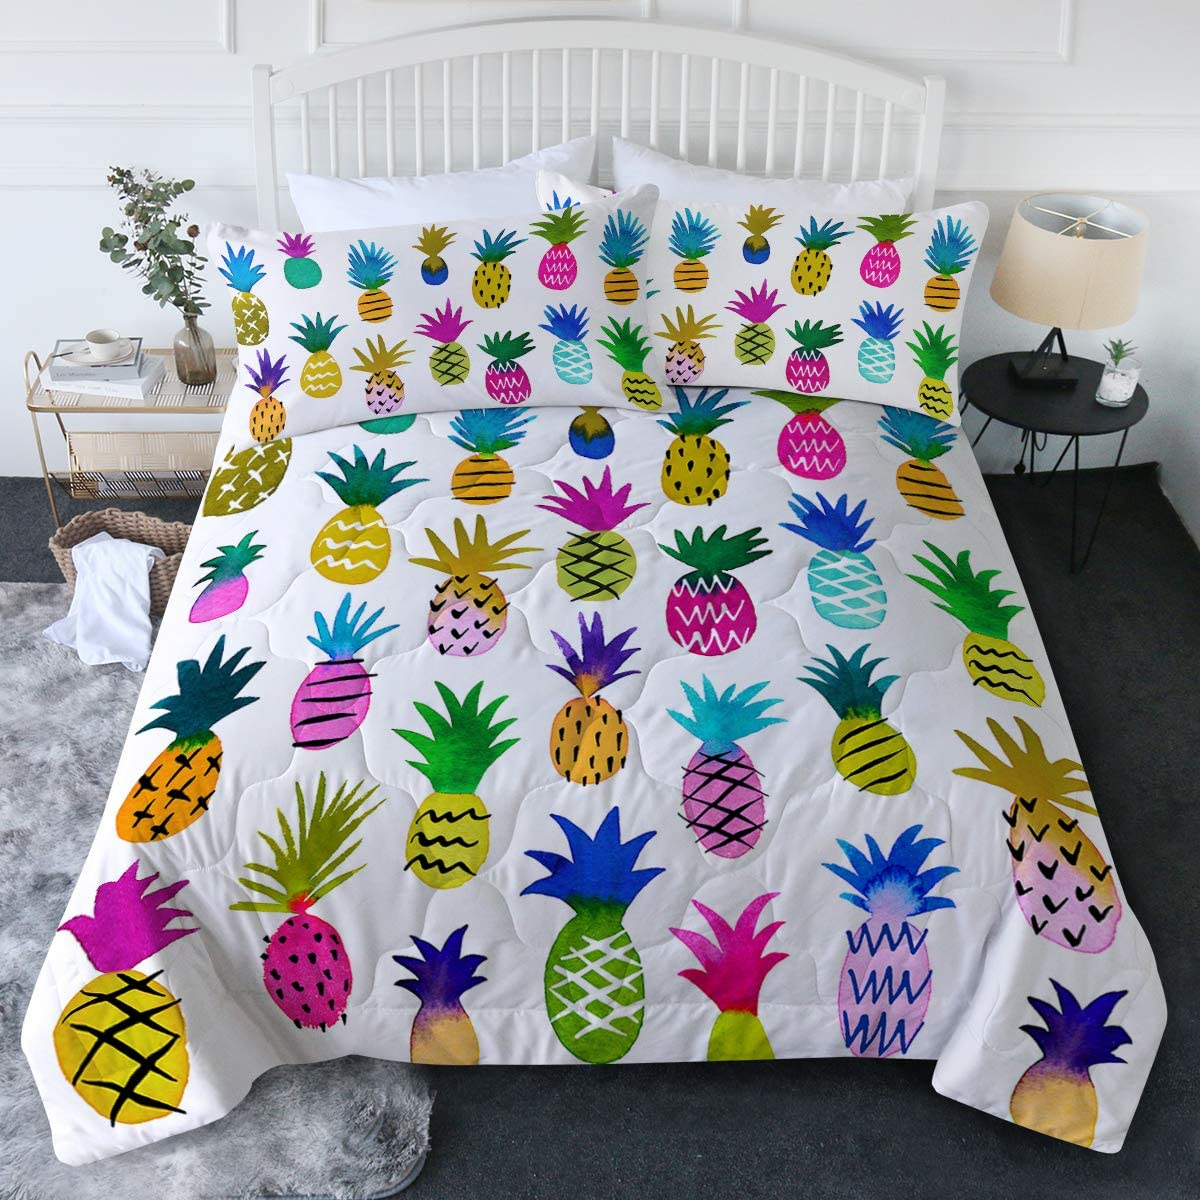 BlessLiving 3 Piece Rainbow Pineapple Comforter Set with Pillow Shams – Hawaiian Fruits Bedding Set with 3D Printed Designs Reversible Comforter Full/Queen Size – Soft Comfortable Machine Washable